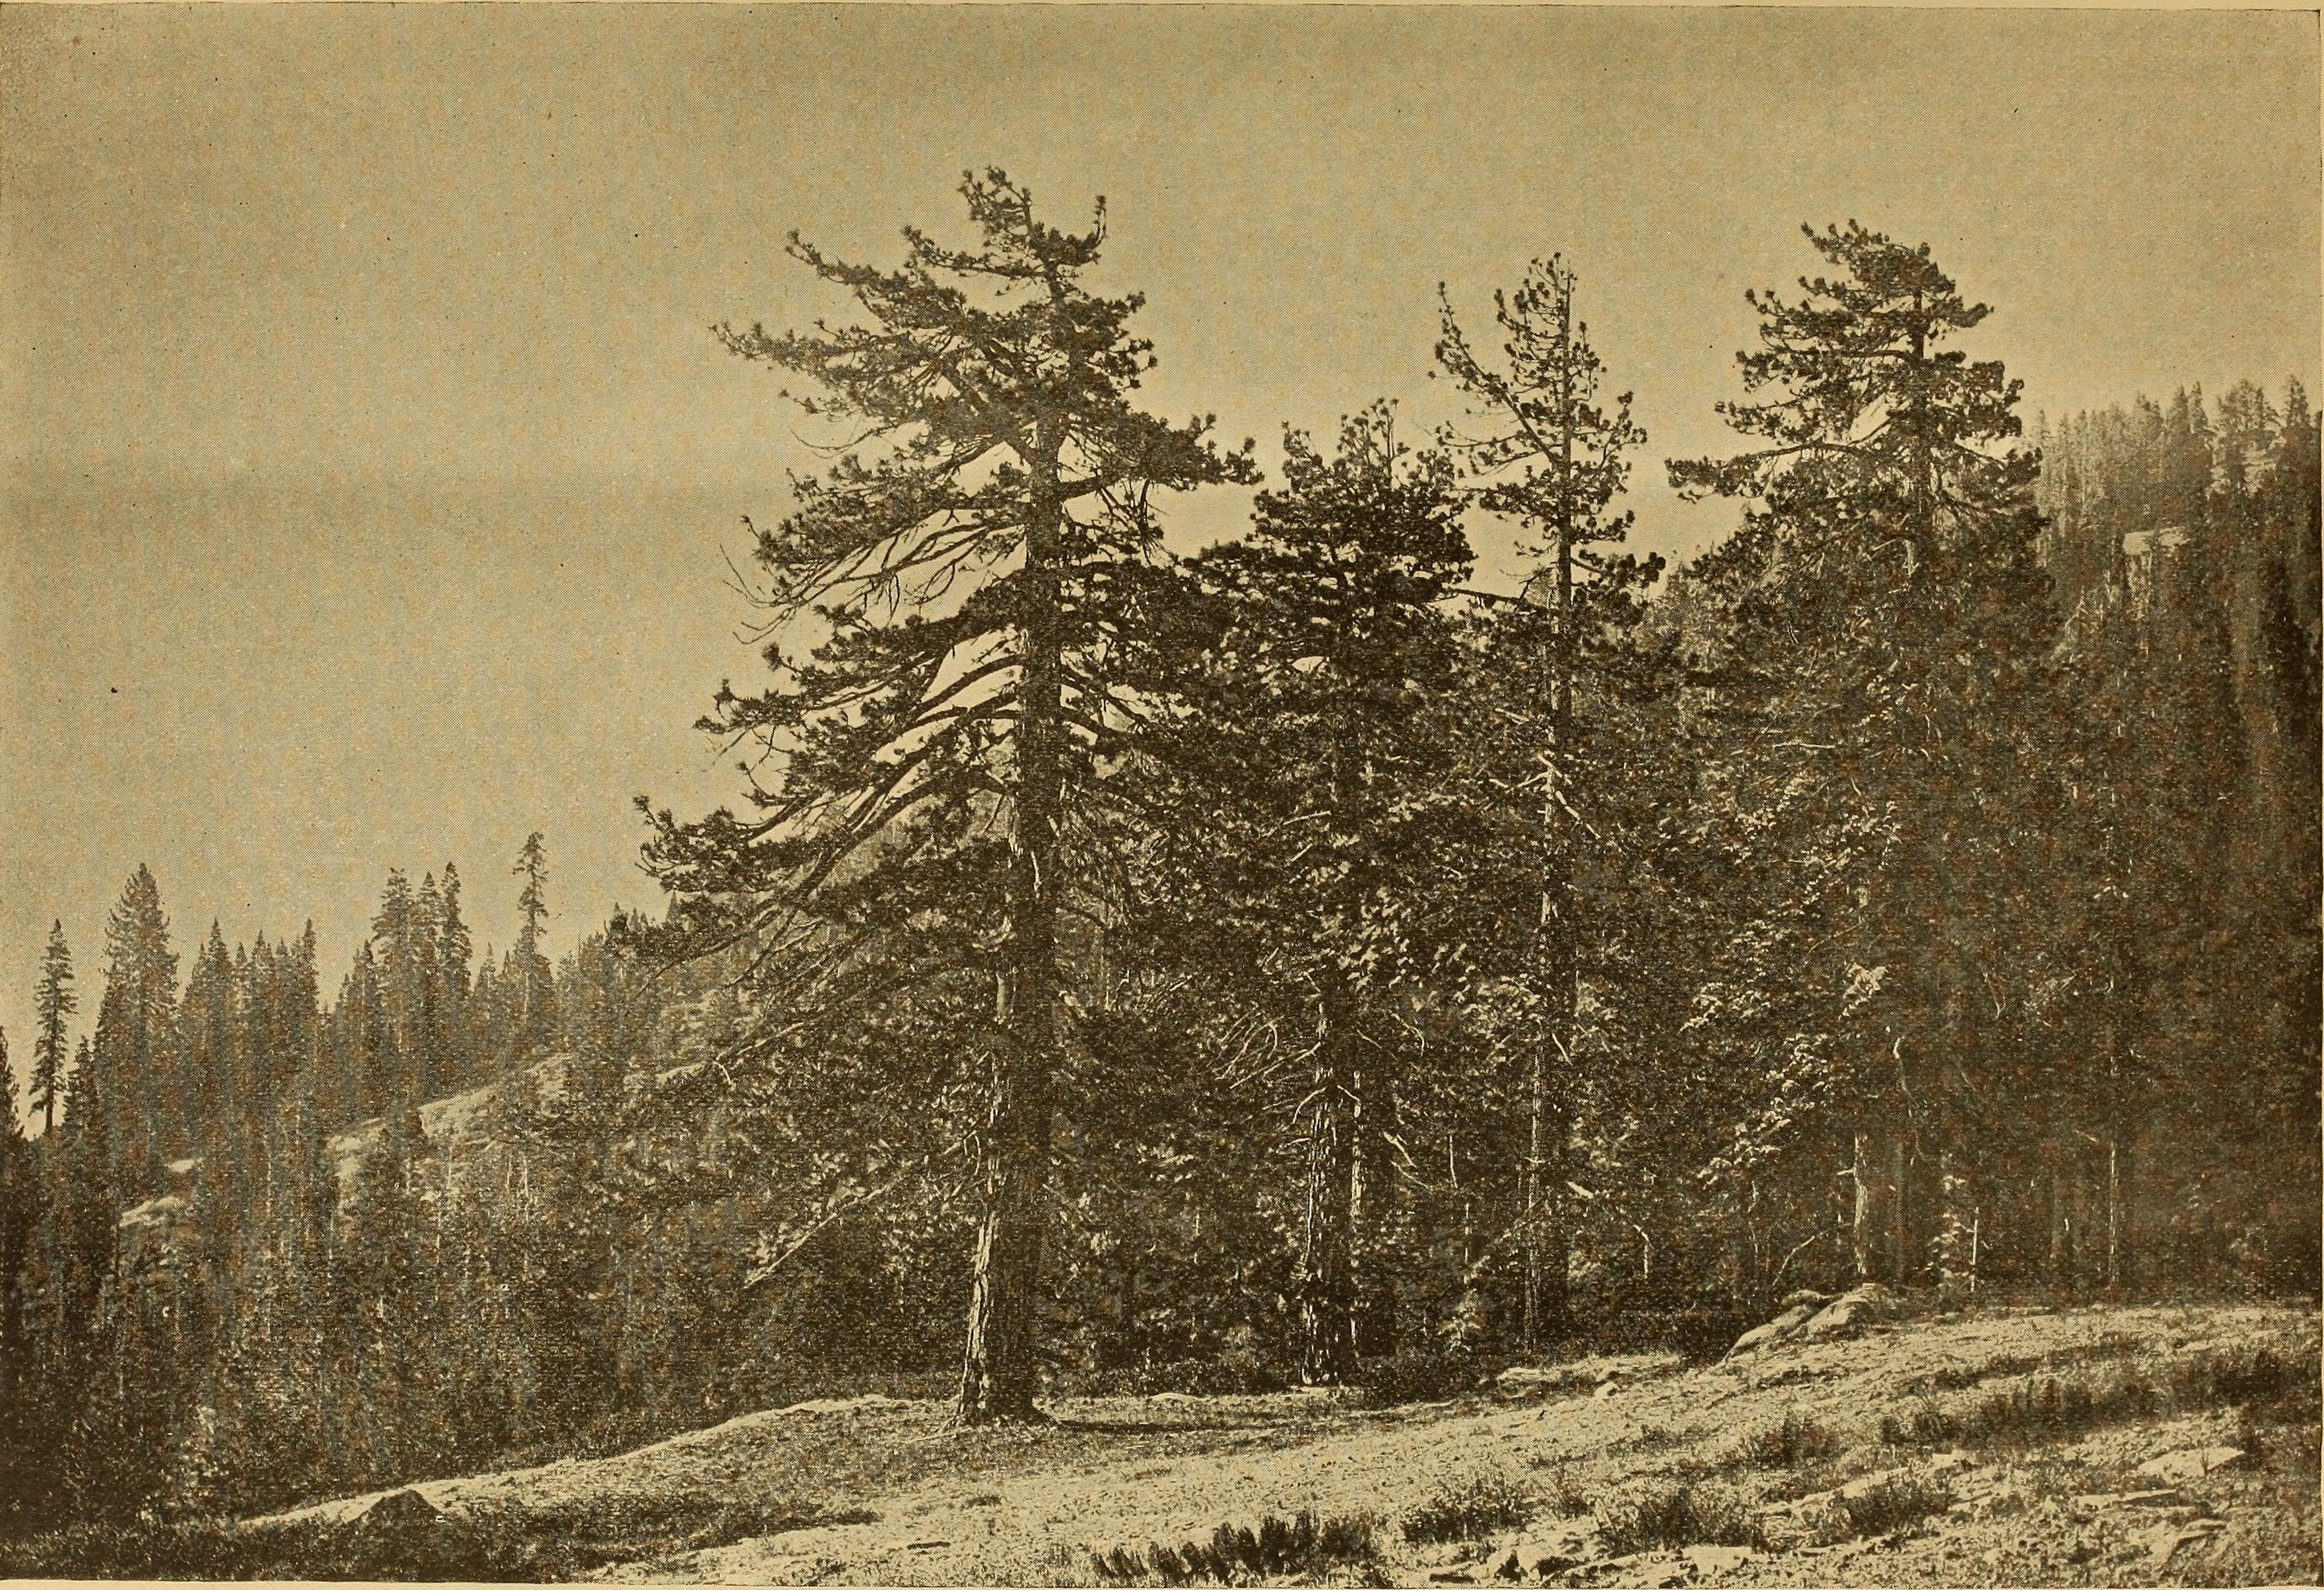 File:Garden and forest; a journal of horticulture, landscape art and ...